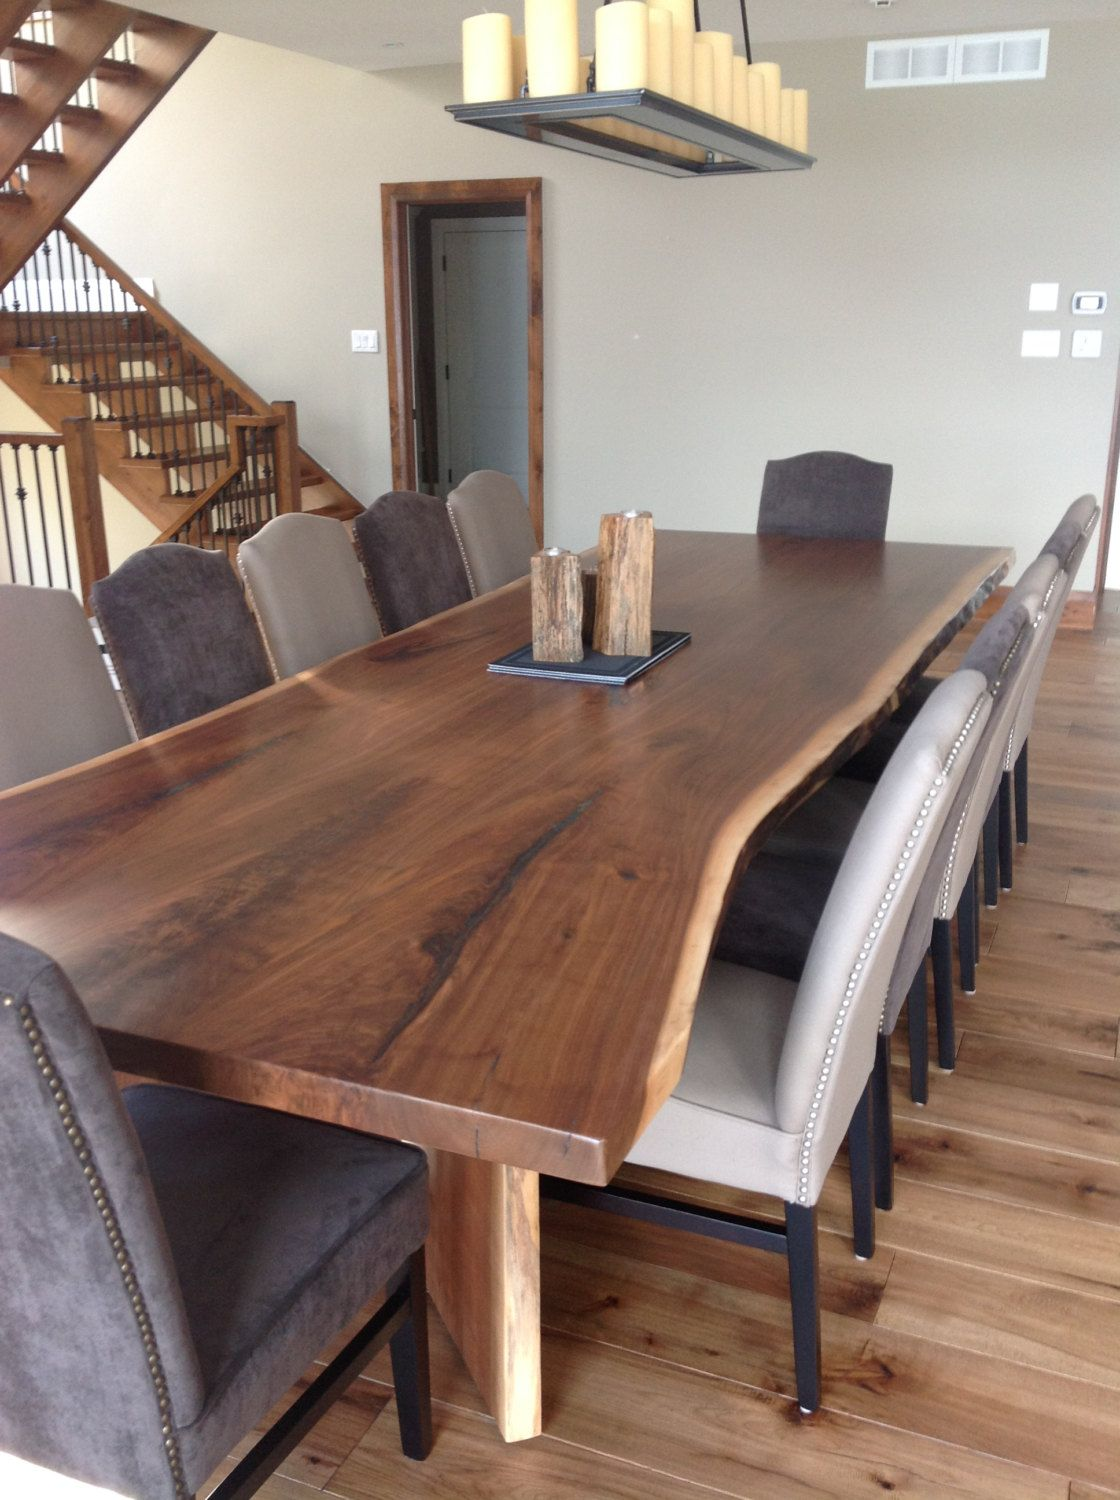 live edge kitchen table islands that look like furniture black walnut dining room 8 book matched harvest